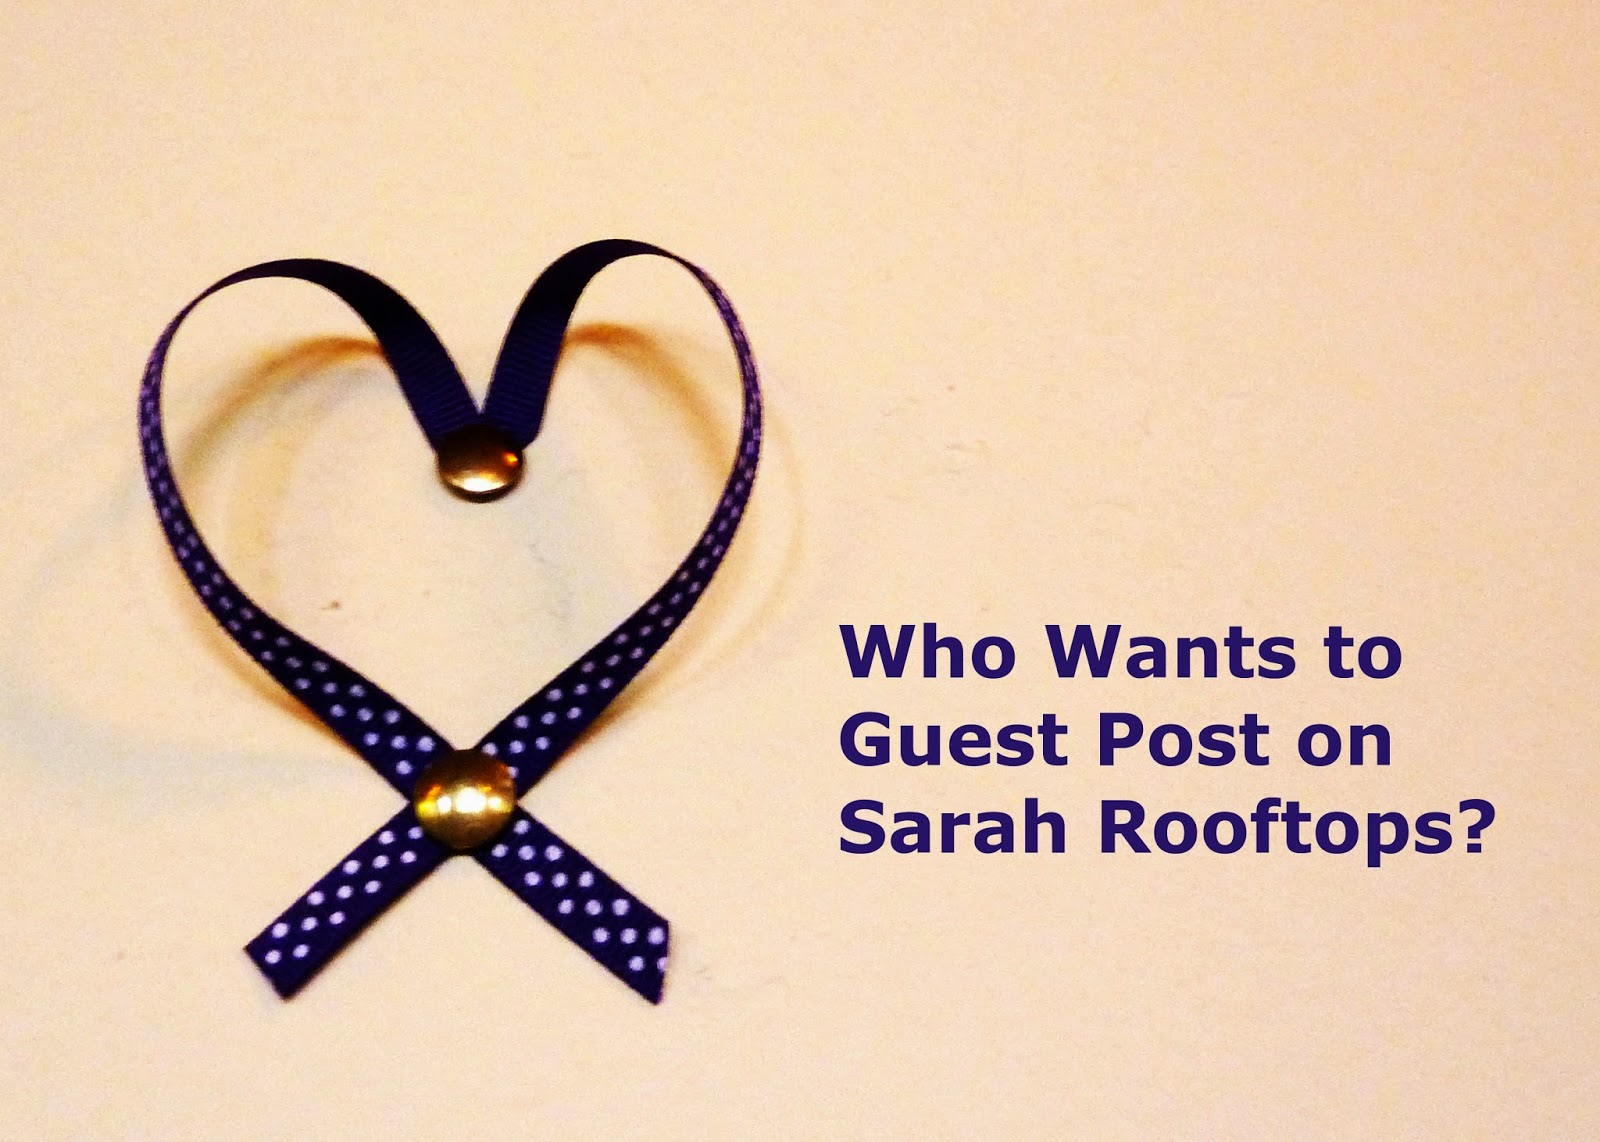 Who Wants to Guest Post on Sarah Rooftops?